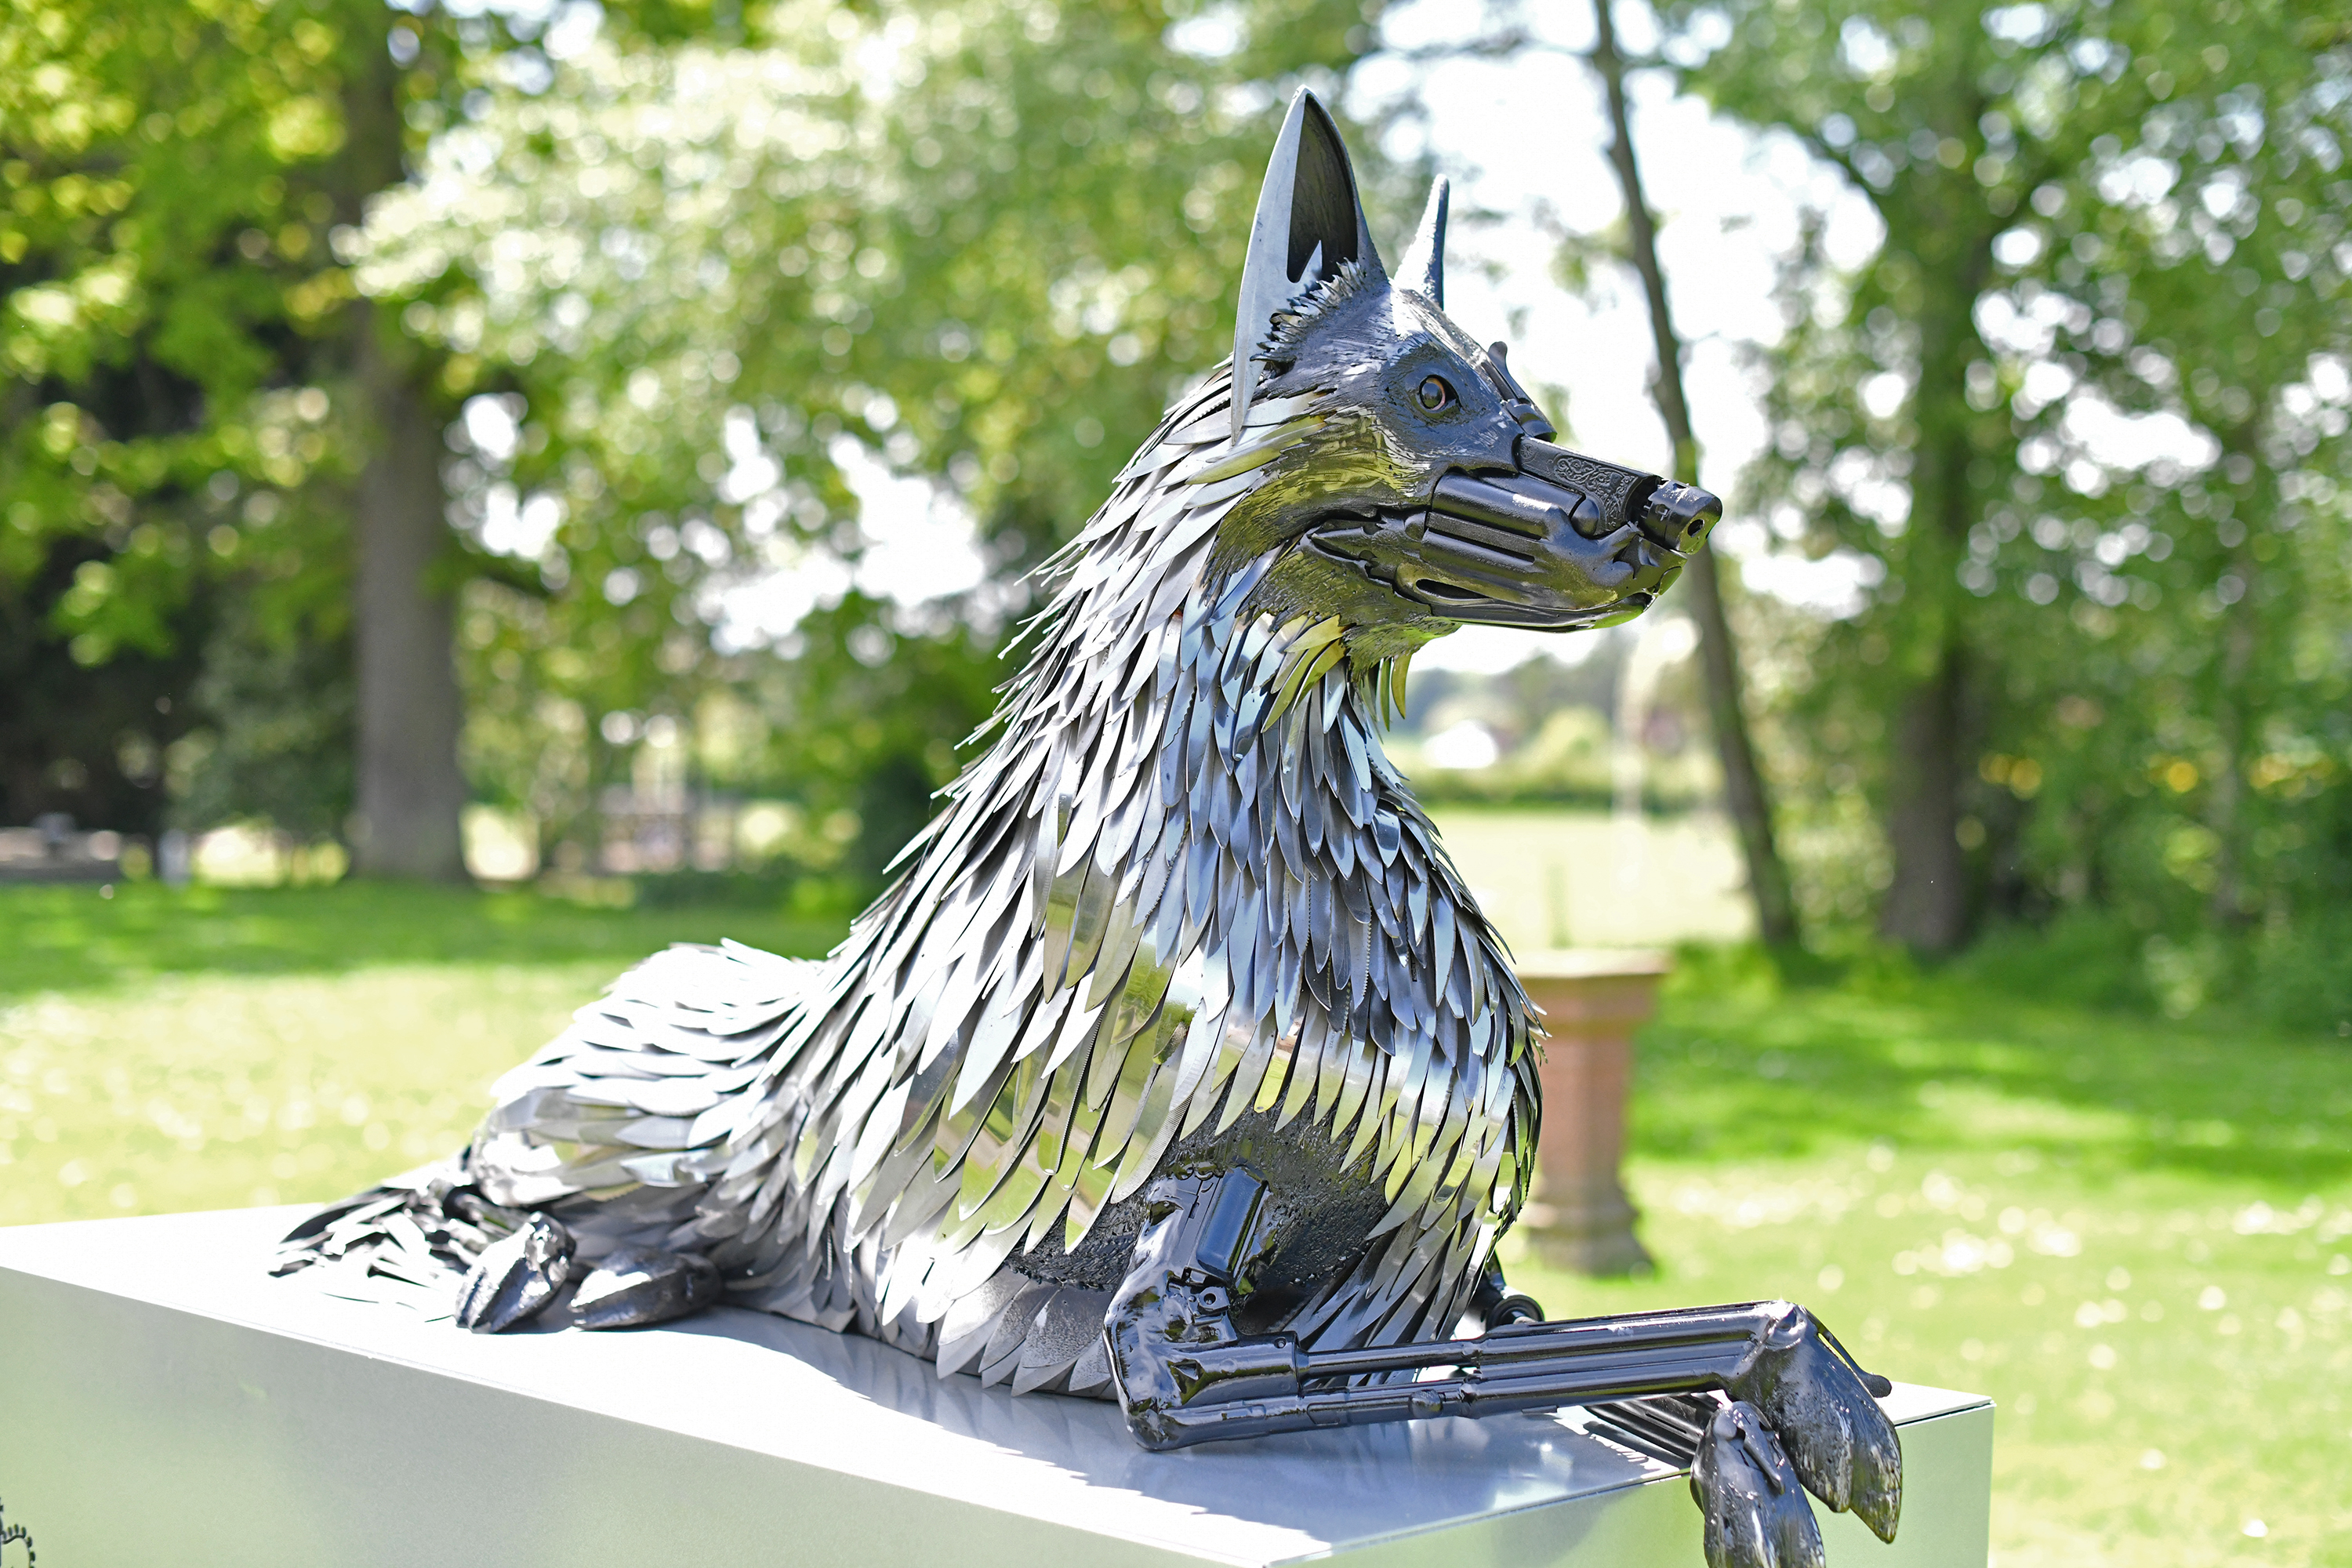 Dog Sculpture made of knives